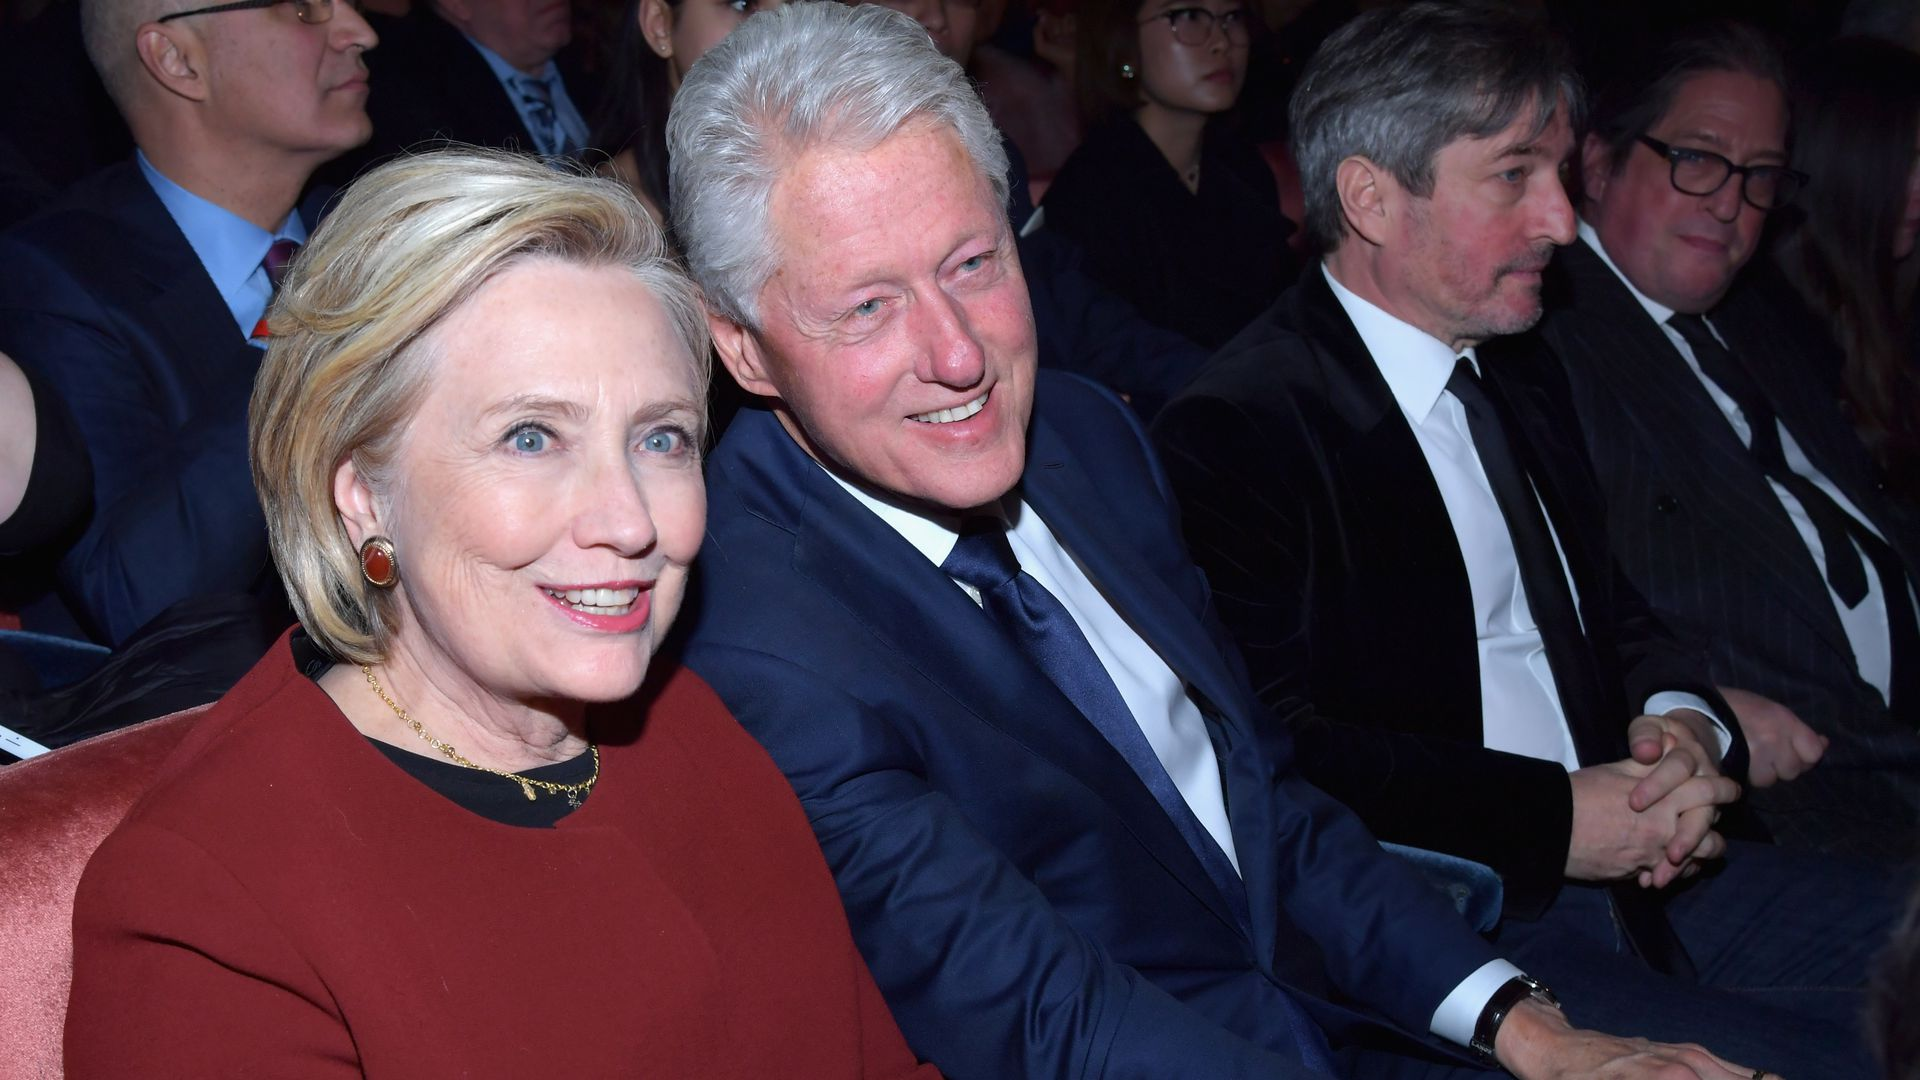 Hillary and Bill Clinton sitting next to each other and smiling at the camera